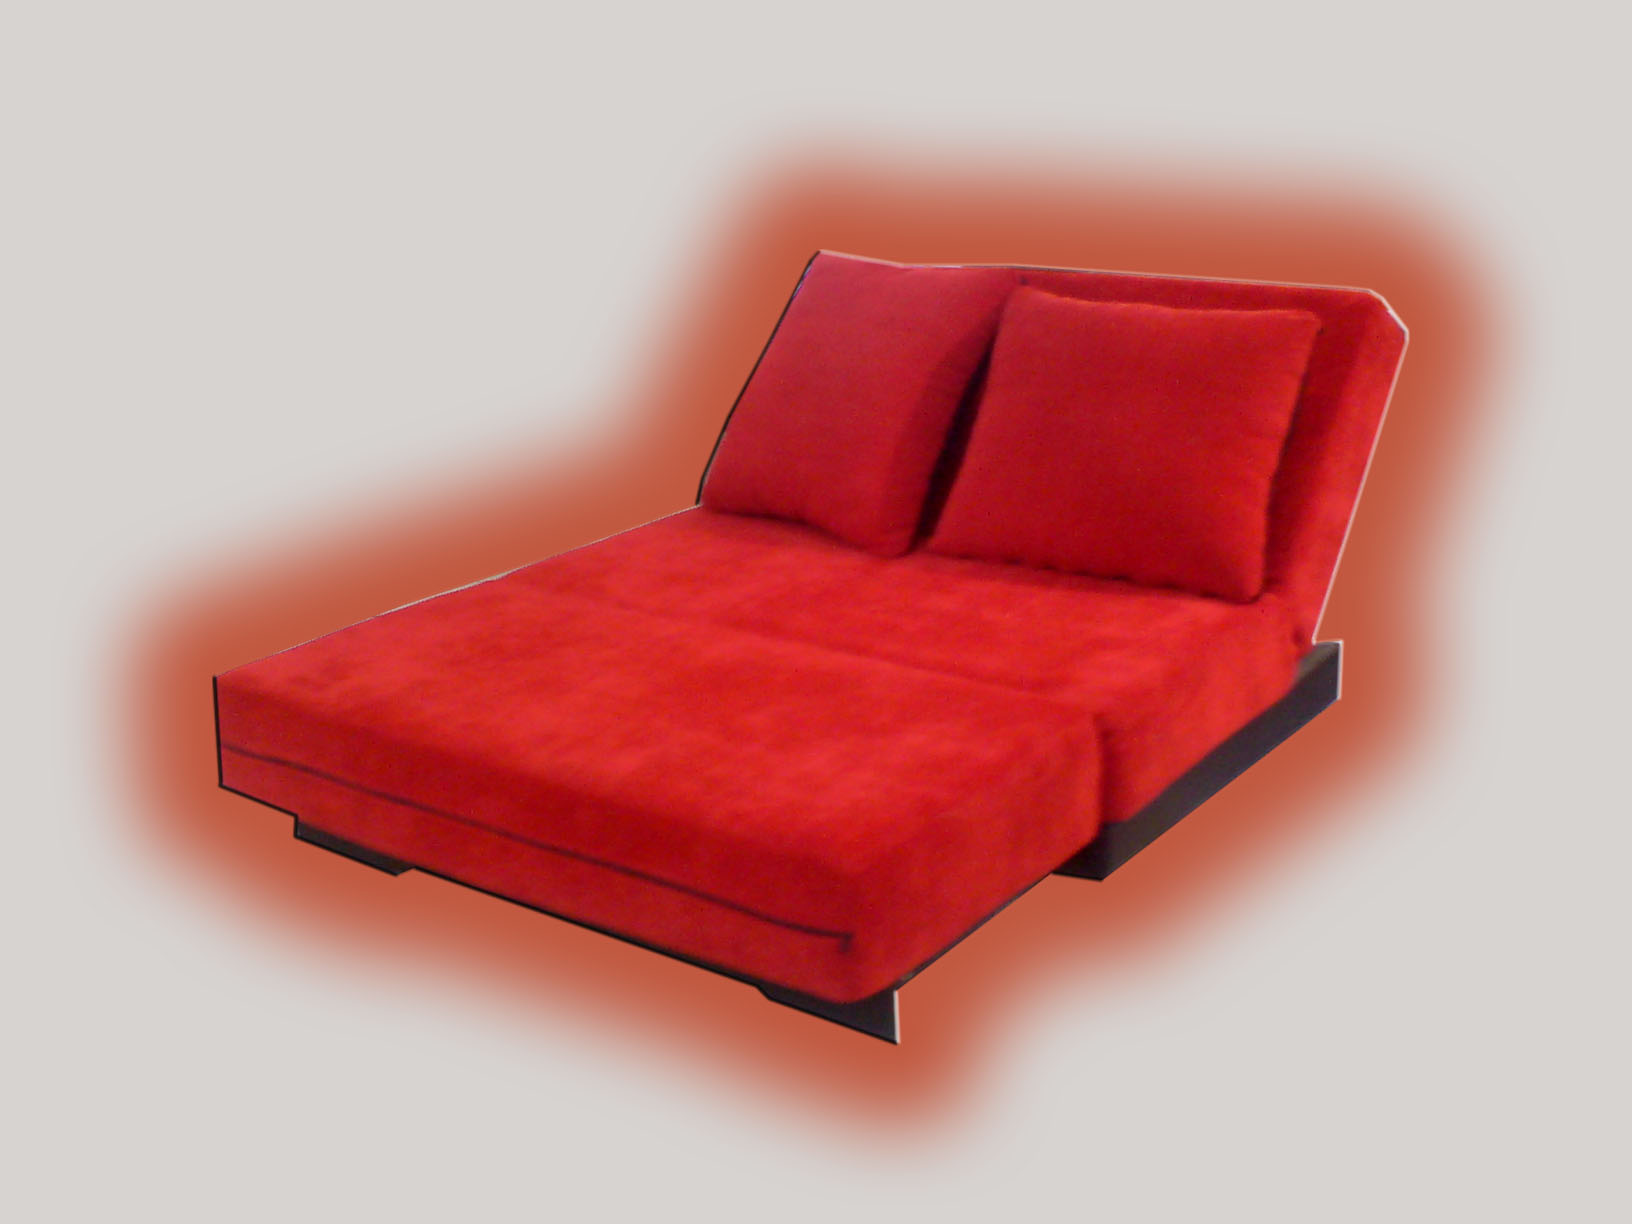 sofa-bed-tampa-tangan